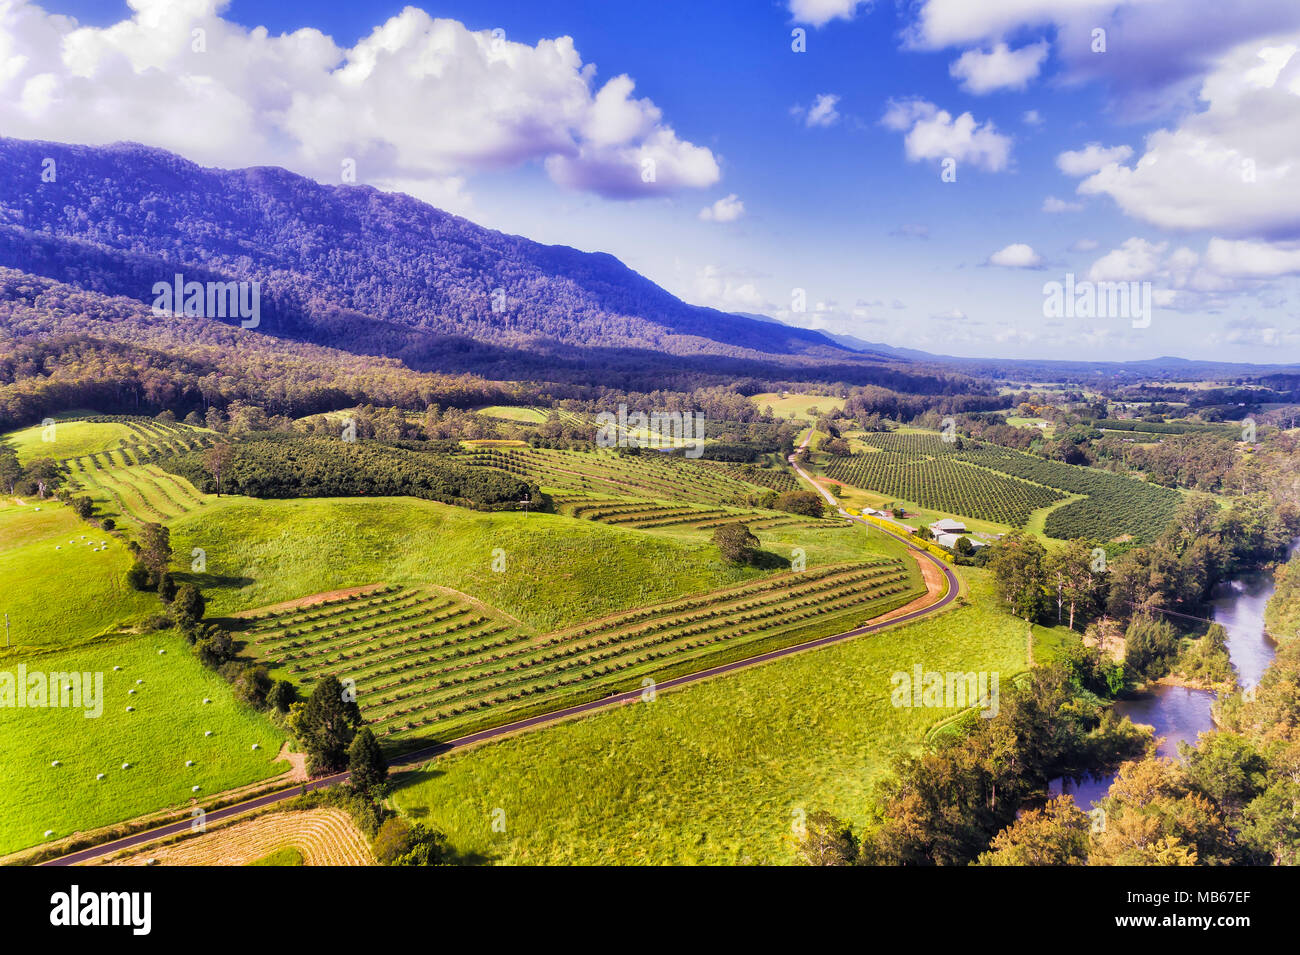 Agriculture farms with cultivated fields of fruit trees and nuts in remote green area of Bellinger near DOrrigo mountaisn of NSW on a summer sunny day - Stock Image